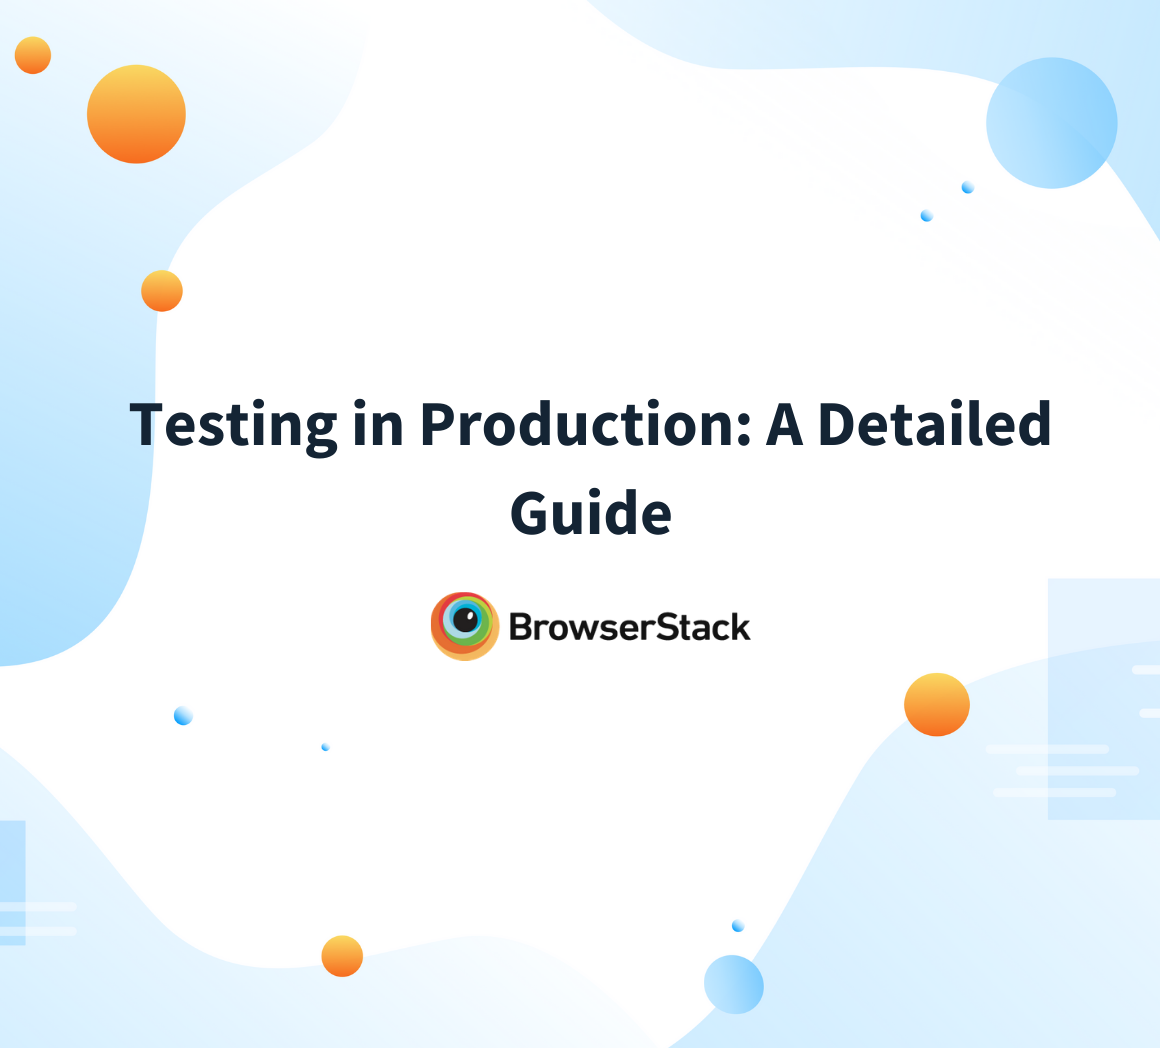 Testing in Production: A Detailed Guide